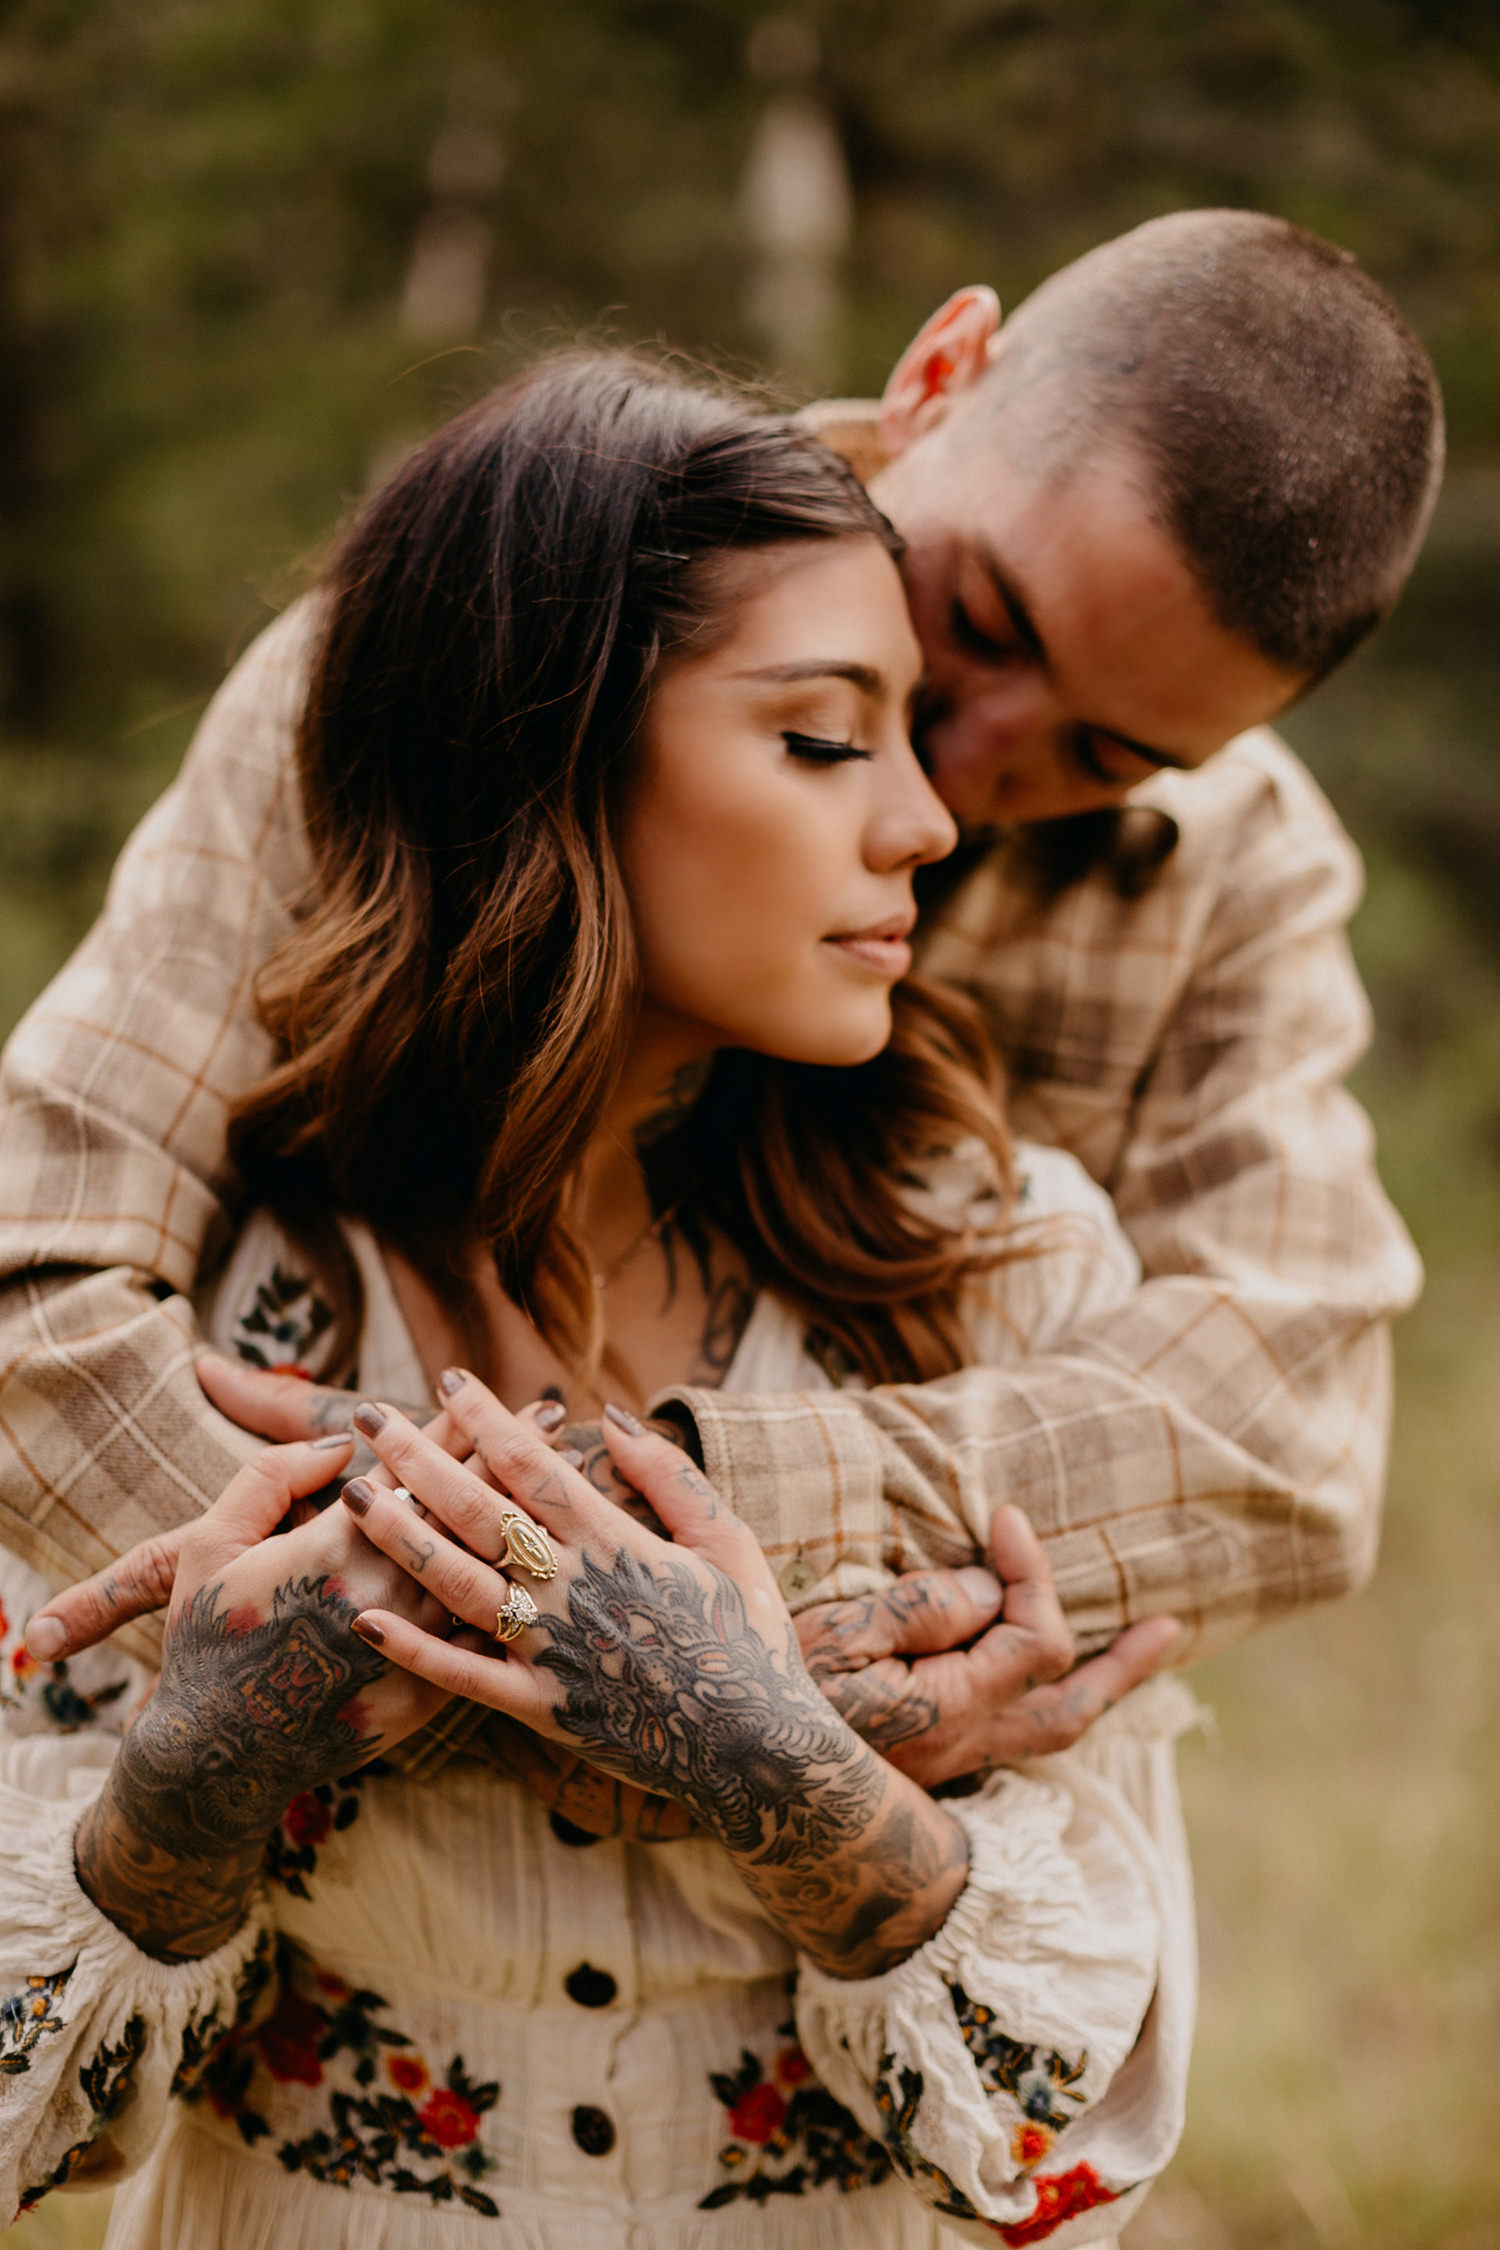 Bailey Colorado Denver Wedding Engagement Photographer Liz Osban Cheyenne Wyoming Mountain Elopement Boho bohemian vintage film tattoo non traditional tattooed rock and roll 17.jpg